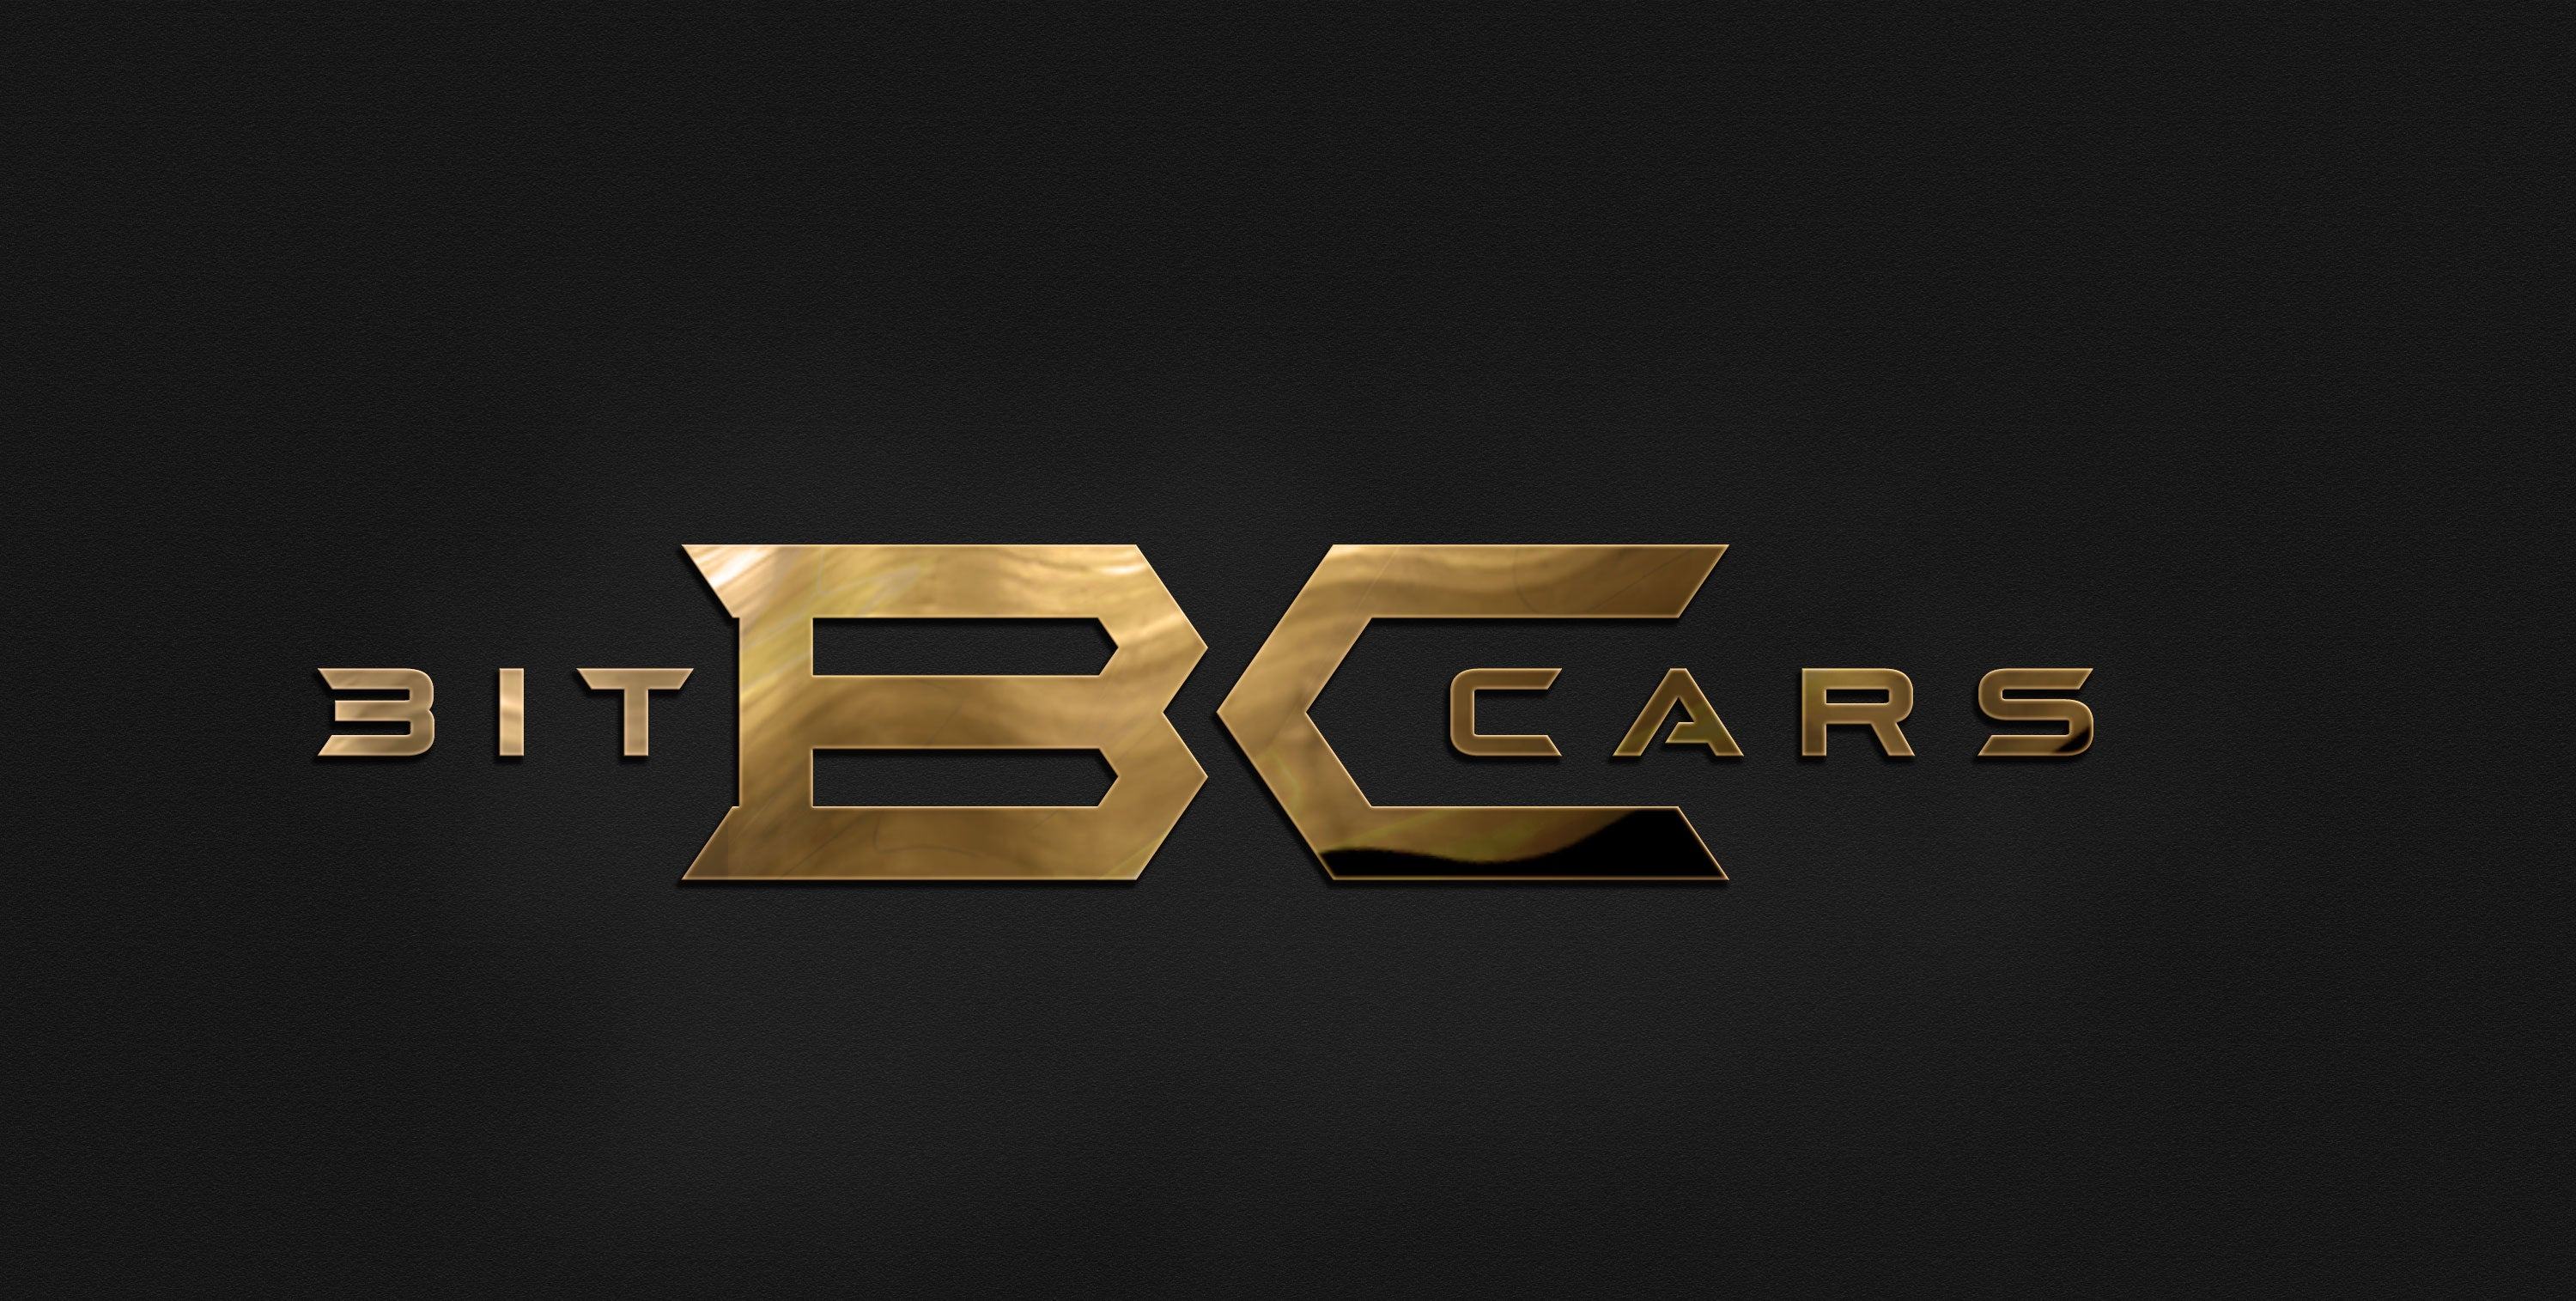 Buy premium Cars on BitCars